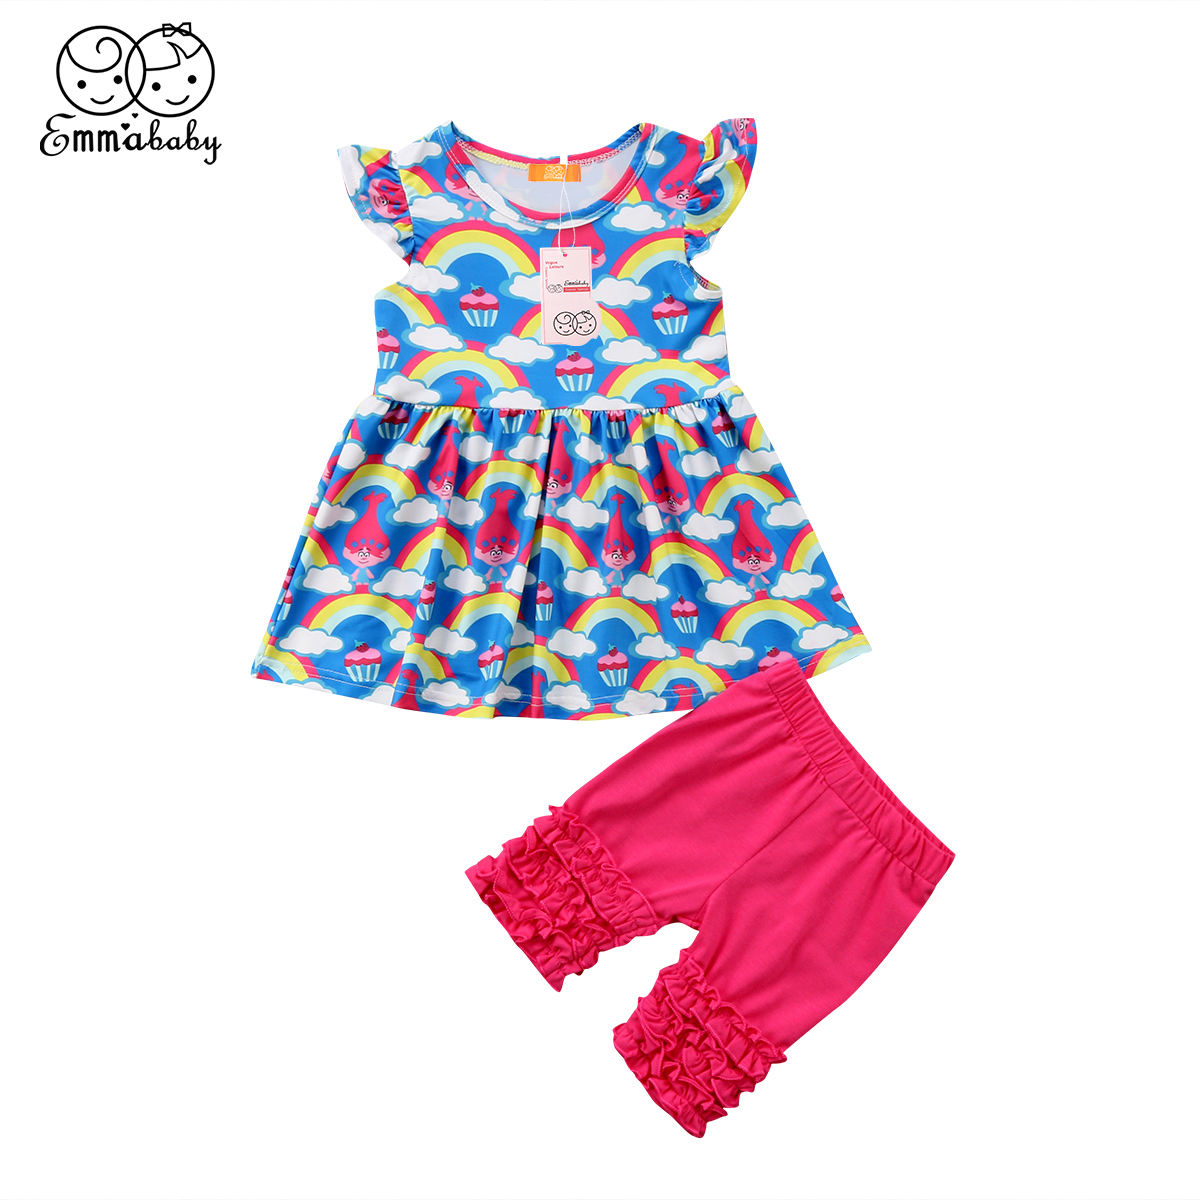 2018 new cute Rainbow outfit set 2pcs Newborn Toddler Baby Girls Cartoon ruffles Tutu Dress Tops+short Pants Outfits Clothes set 3pcs set cute newborn baby girl clothes 2017 worth the wait baby bodysuit romper ruffles tutu skirted shorts headband outfits